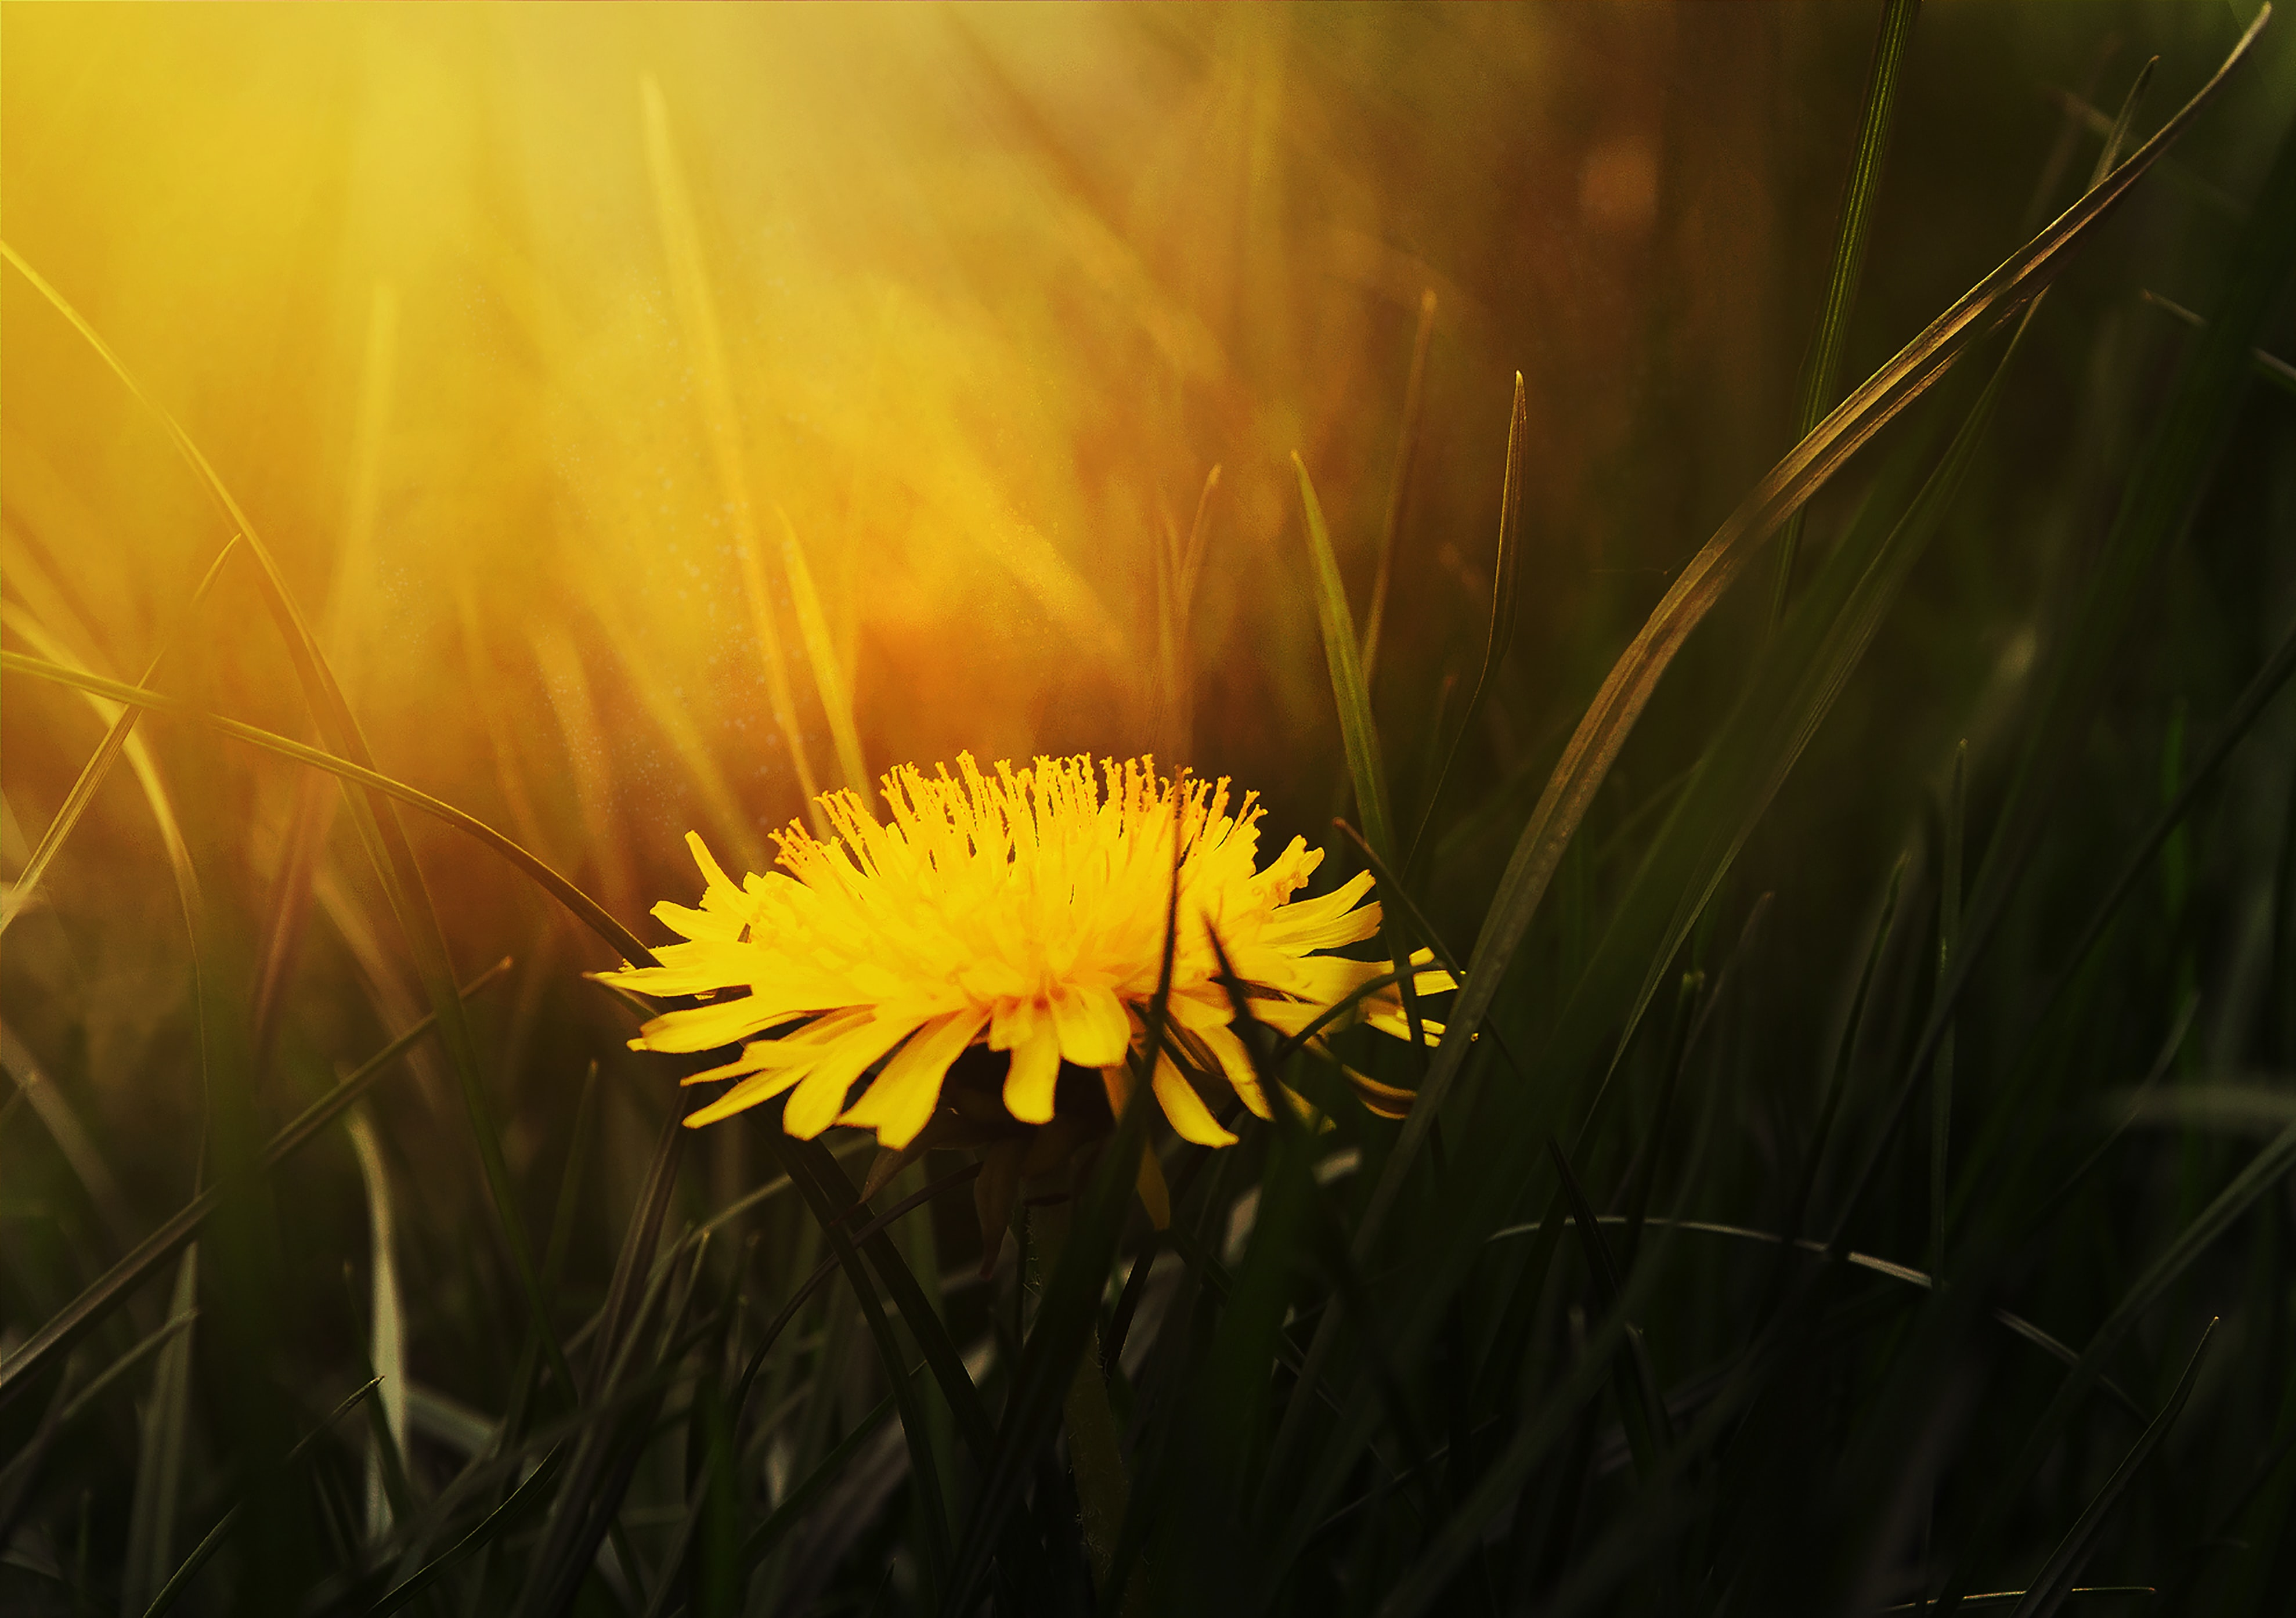 A close-up of a yellow dandelion batched in warm light